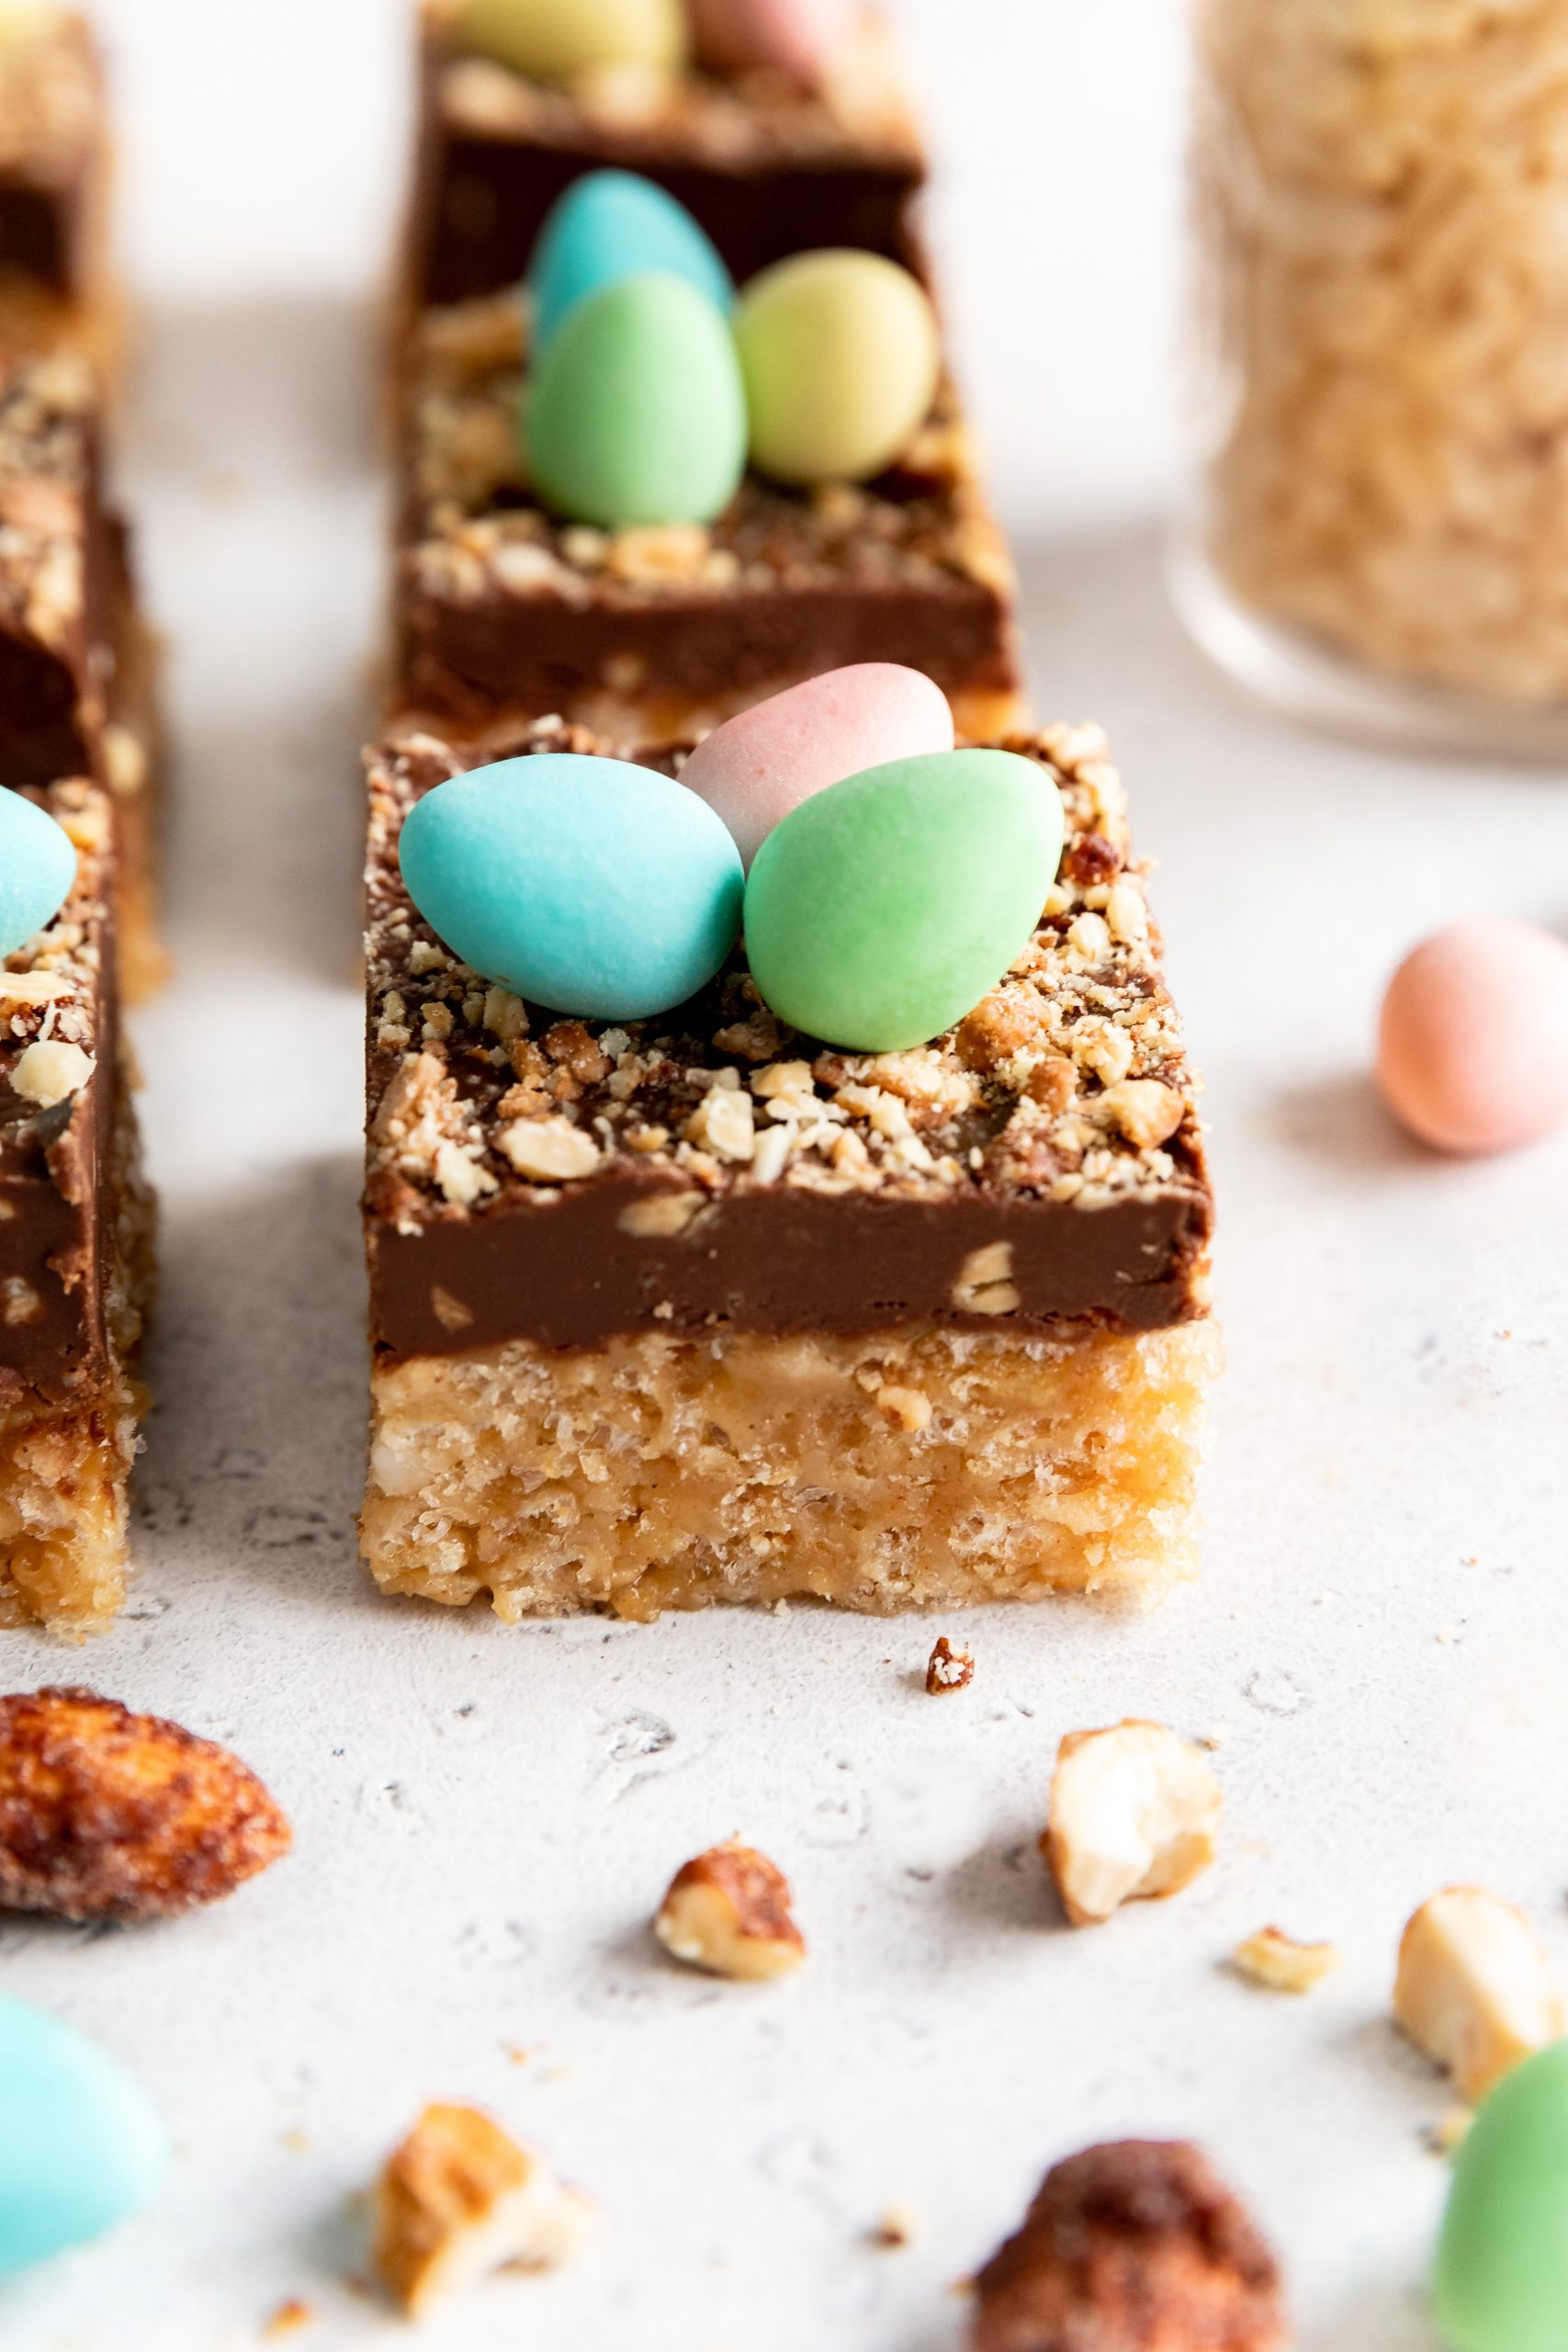 Fudge Rice Crisps Squares with Chocolate Eggs on Top